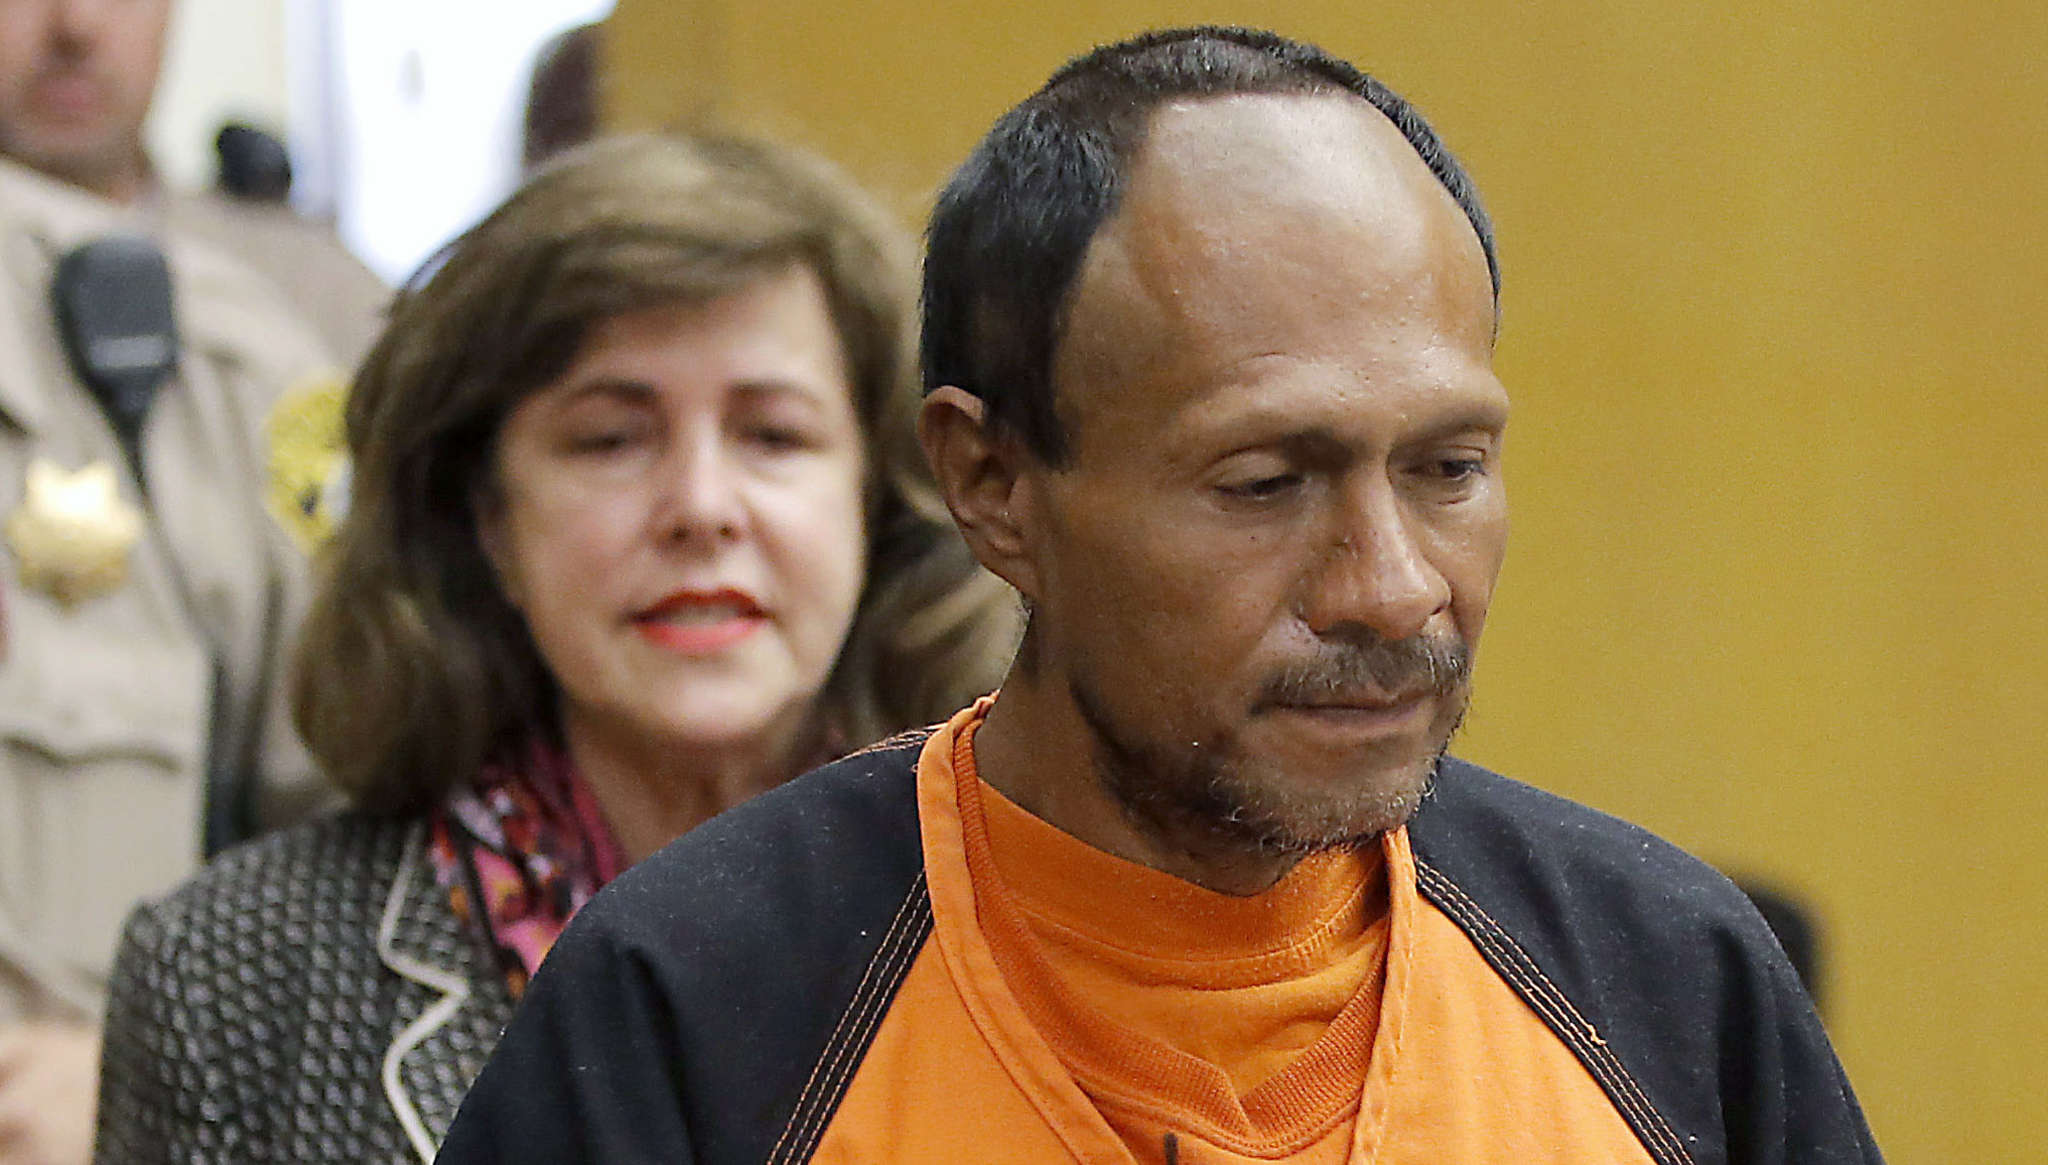 Remember Juan Francisco Lopez-Sanchez? He was free to wander San Francisco because local police ignored a request from the feds to turn him over for deportation.